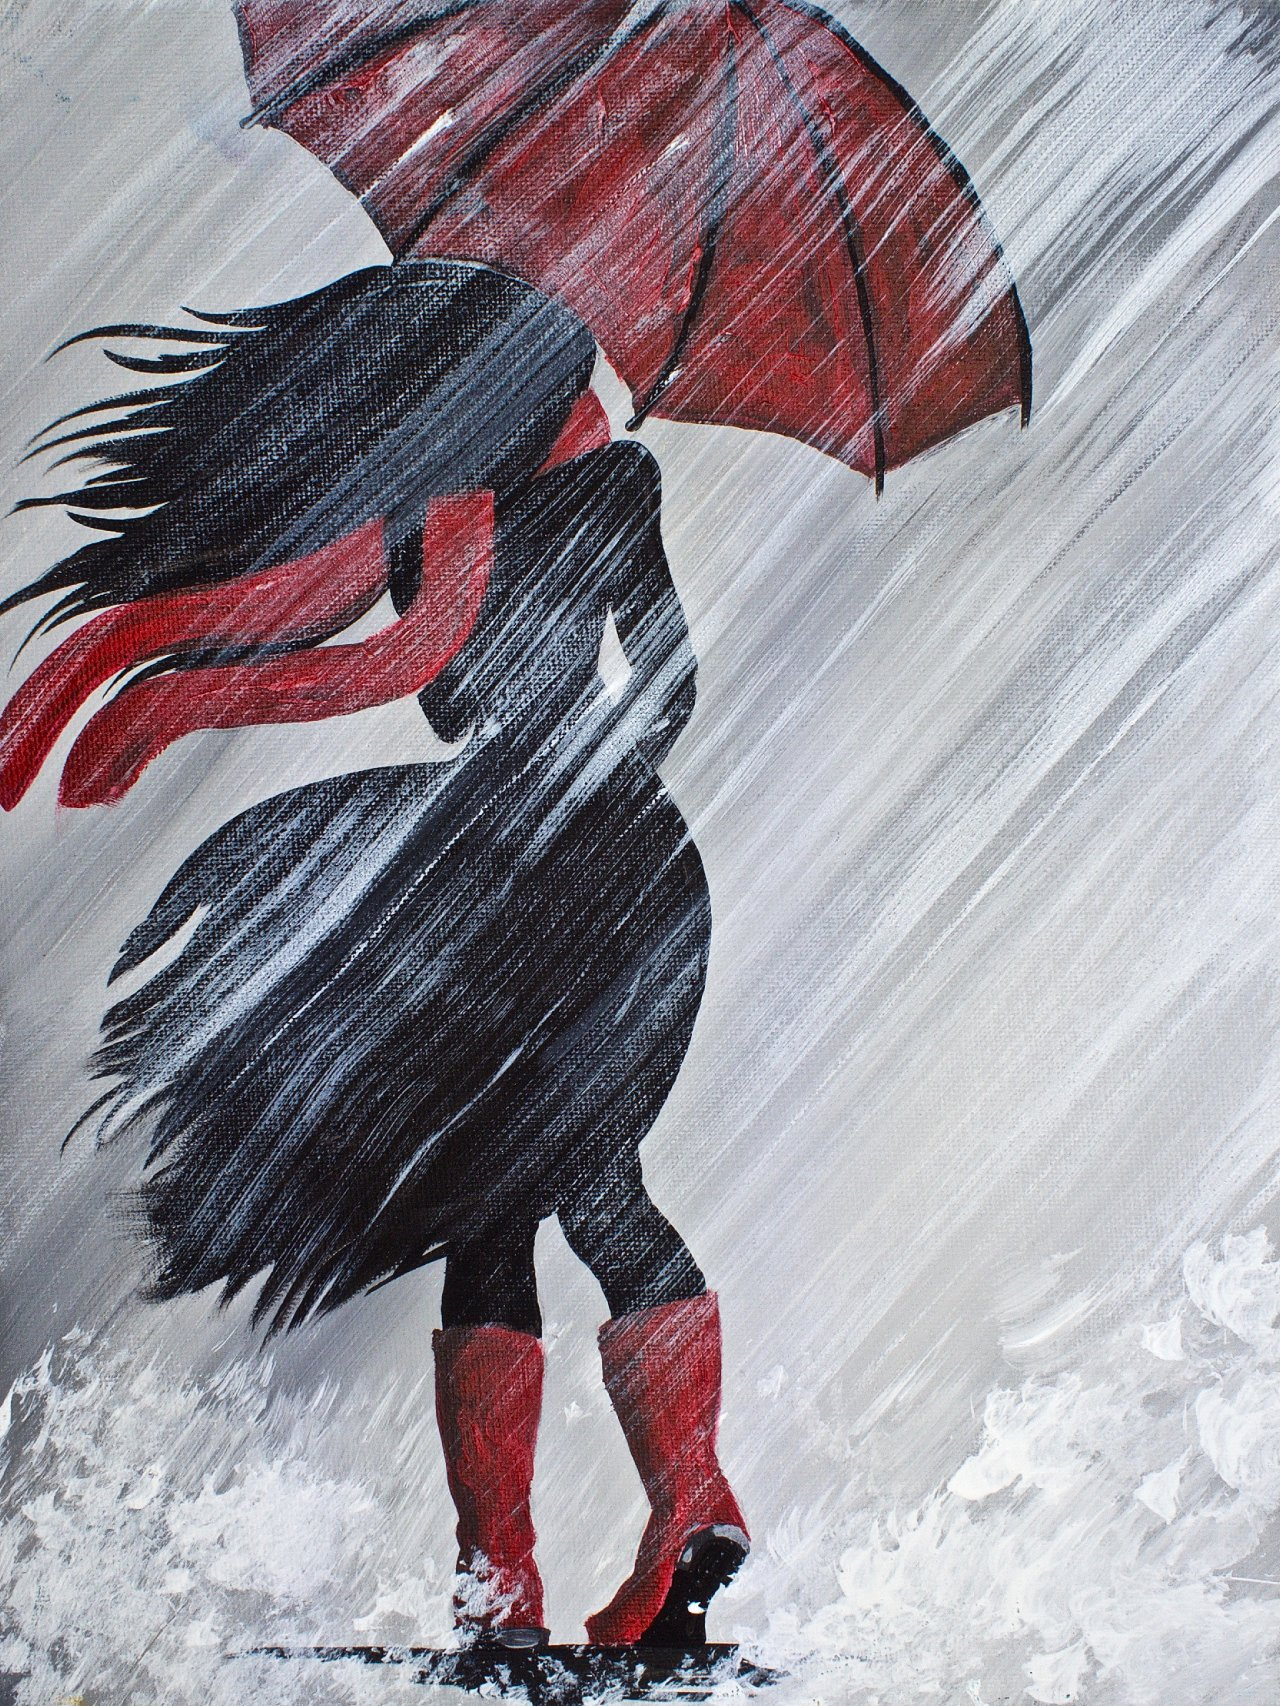 A Walking In The Rain With Red Umbrella Acrylic Painting By Art Sherpa